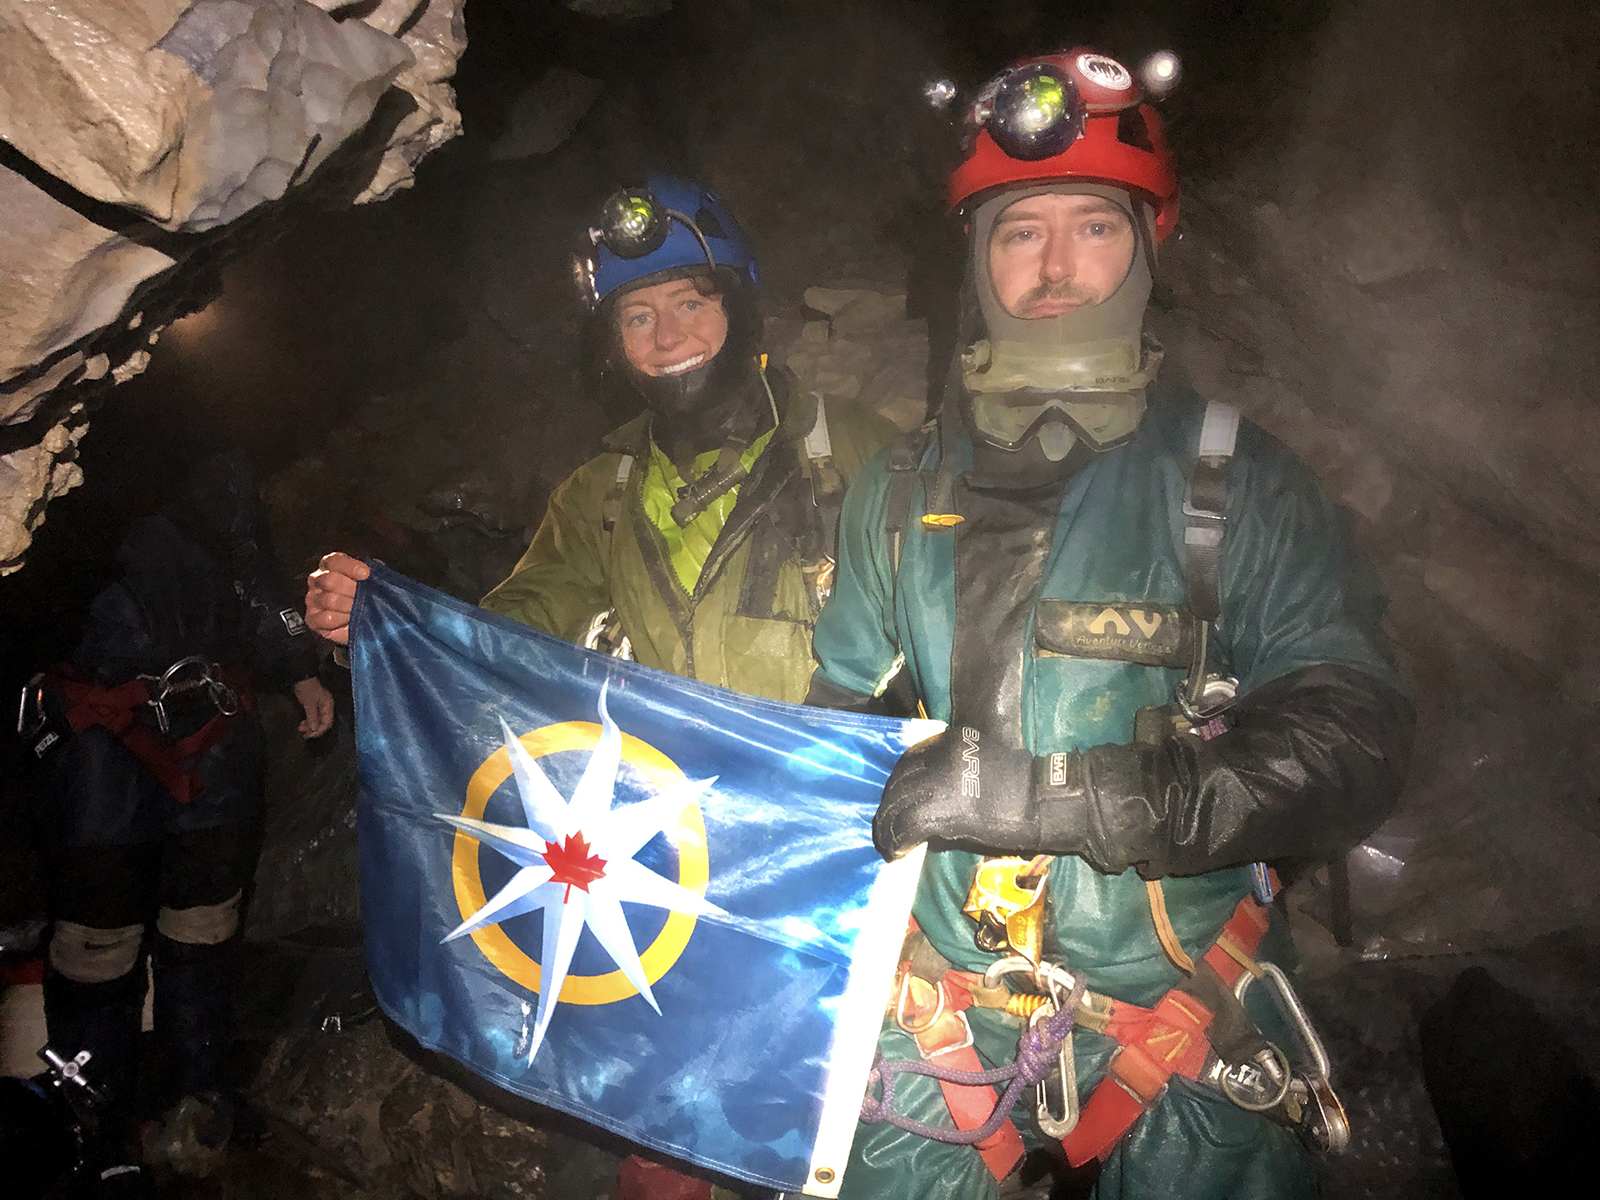 Kathleen Graham and Christian Stenner with the flag of the Royal Canadian Geographical Society inside Raspberry Rising cave